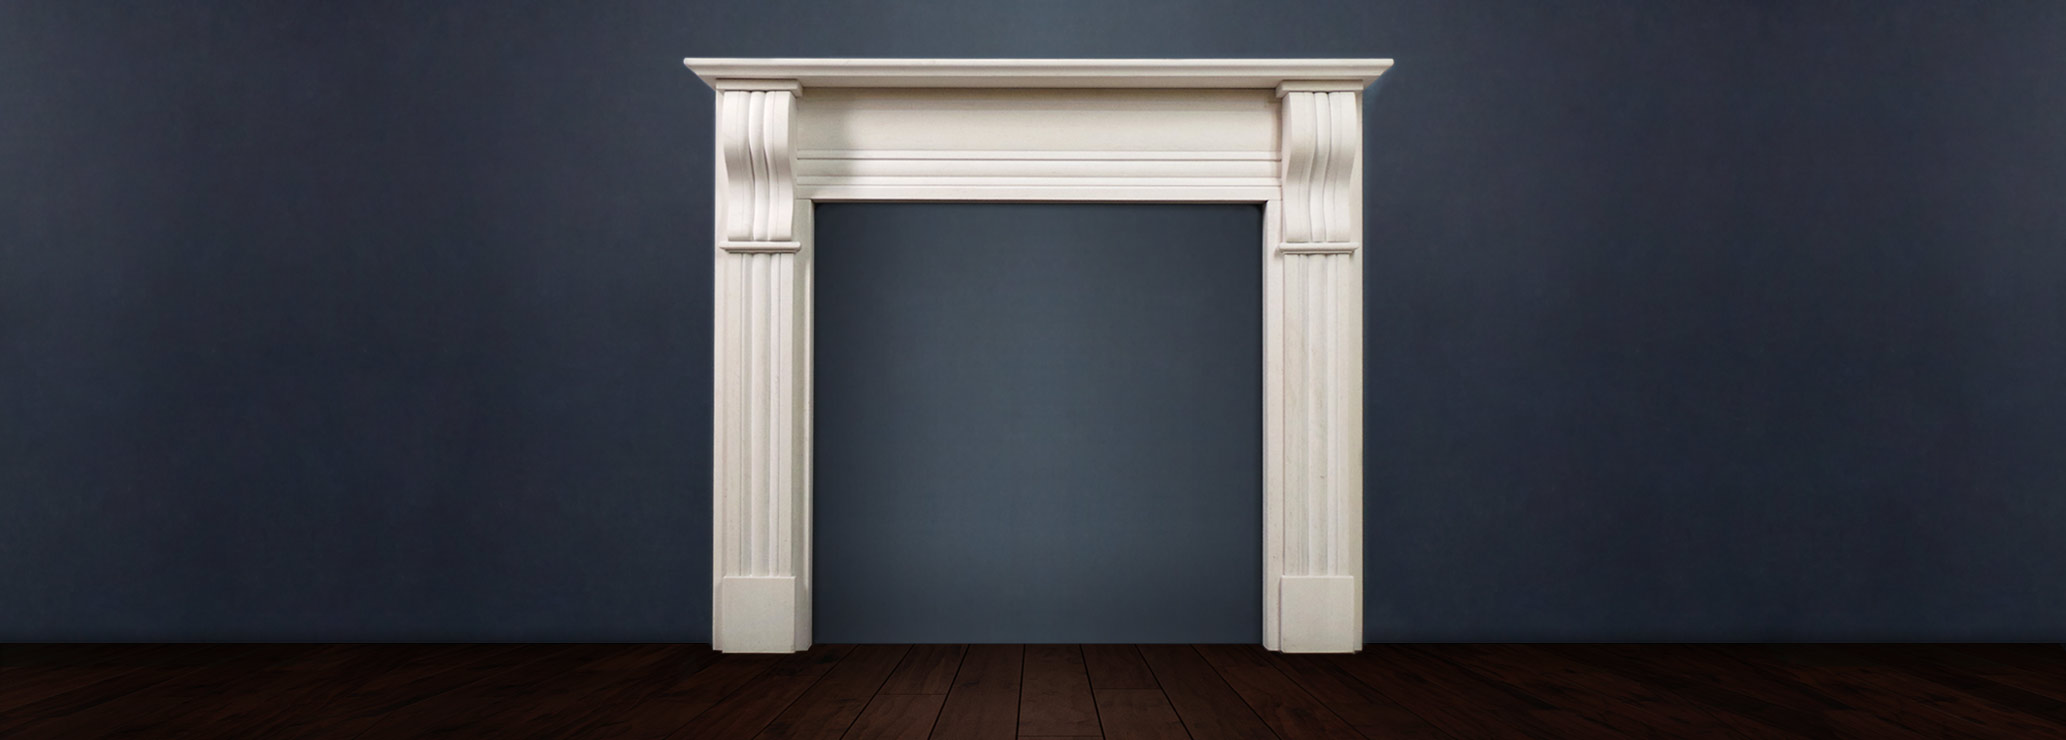 The Dublin Corbel fireplace is based on classical architecture with S-shaped scrolls the crisp detailing and genteel proportions make this a timeless fireplace chimney piece